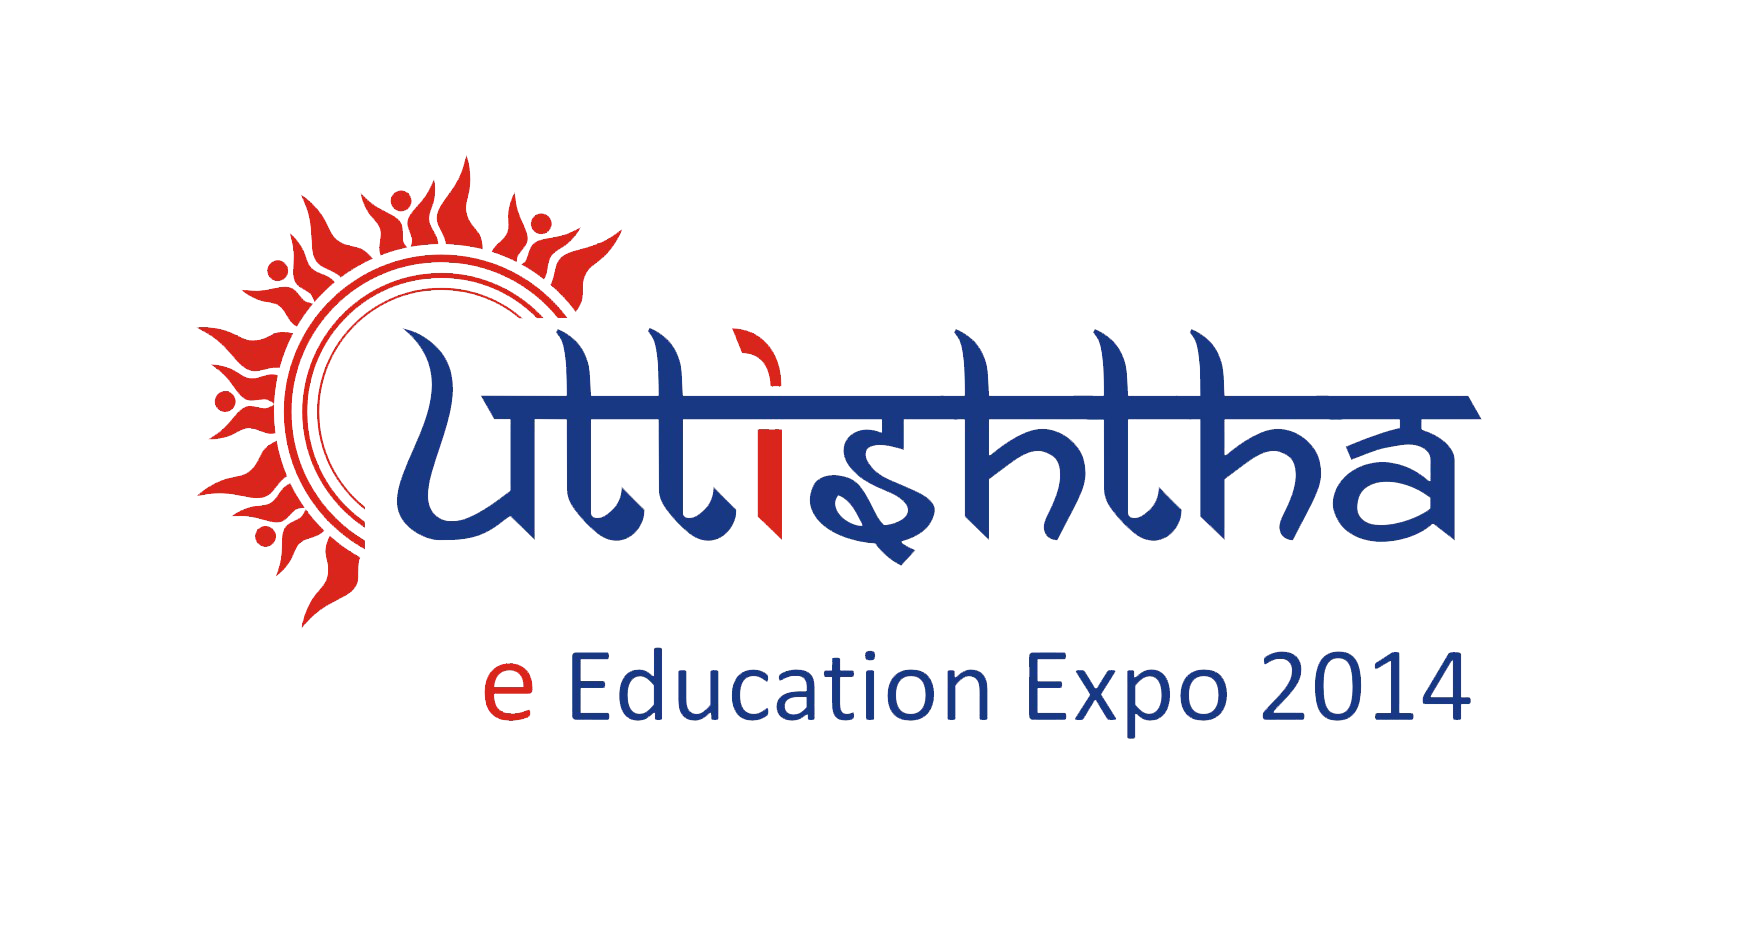 Uttishtha e-Education Expo 2014 logo